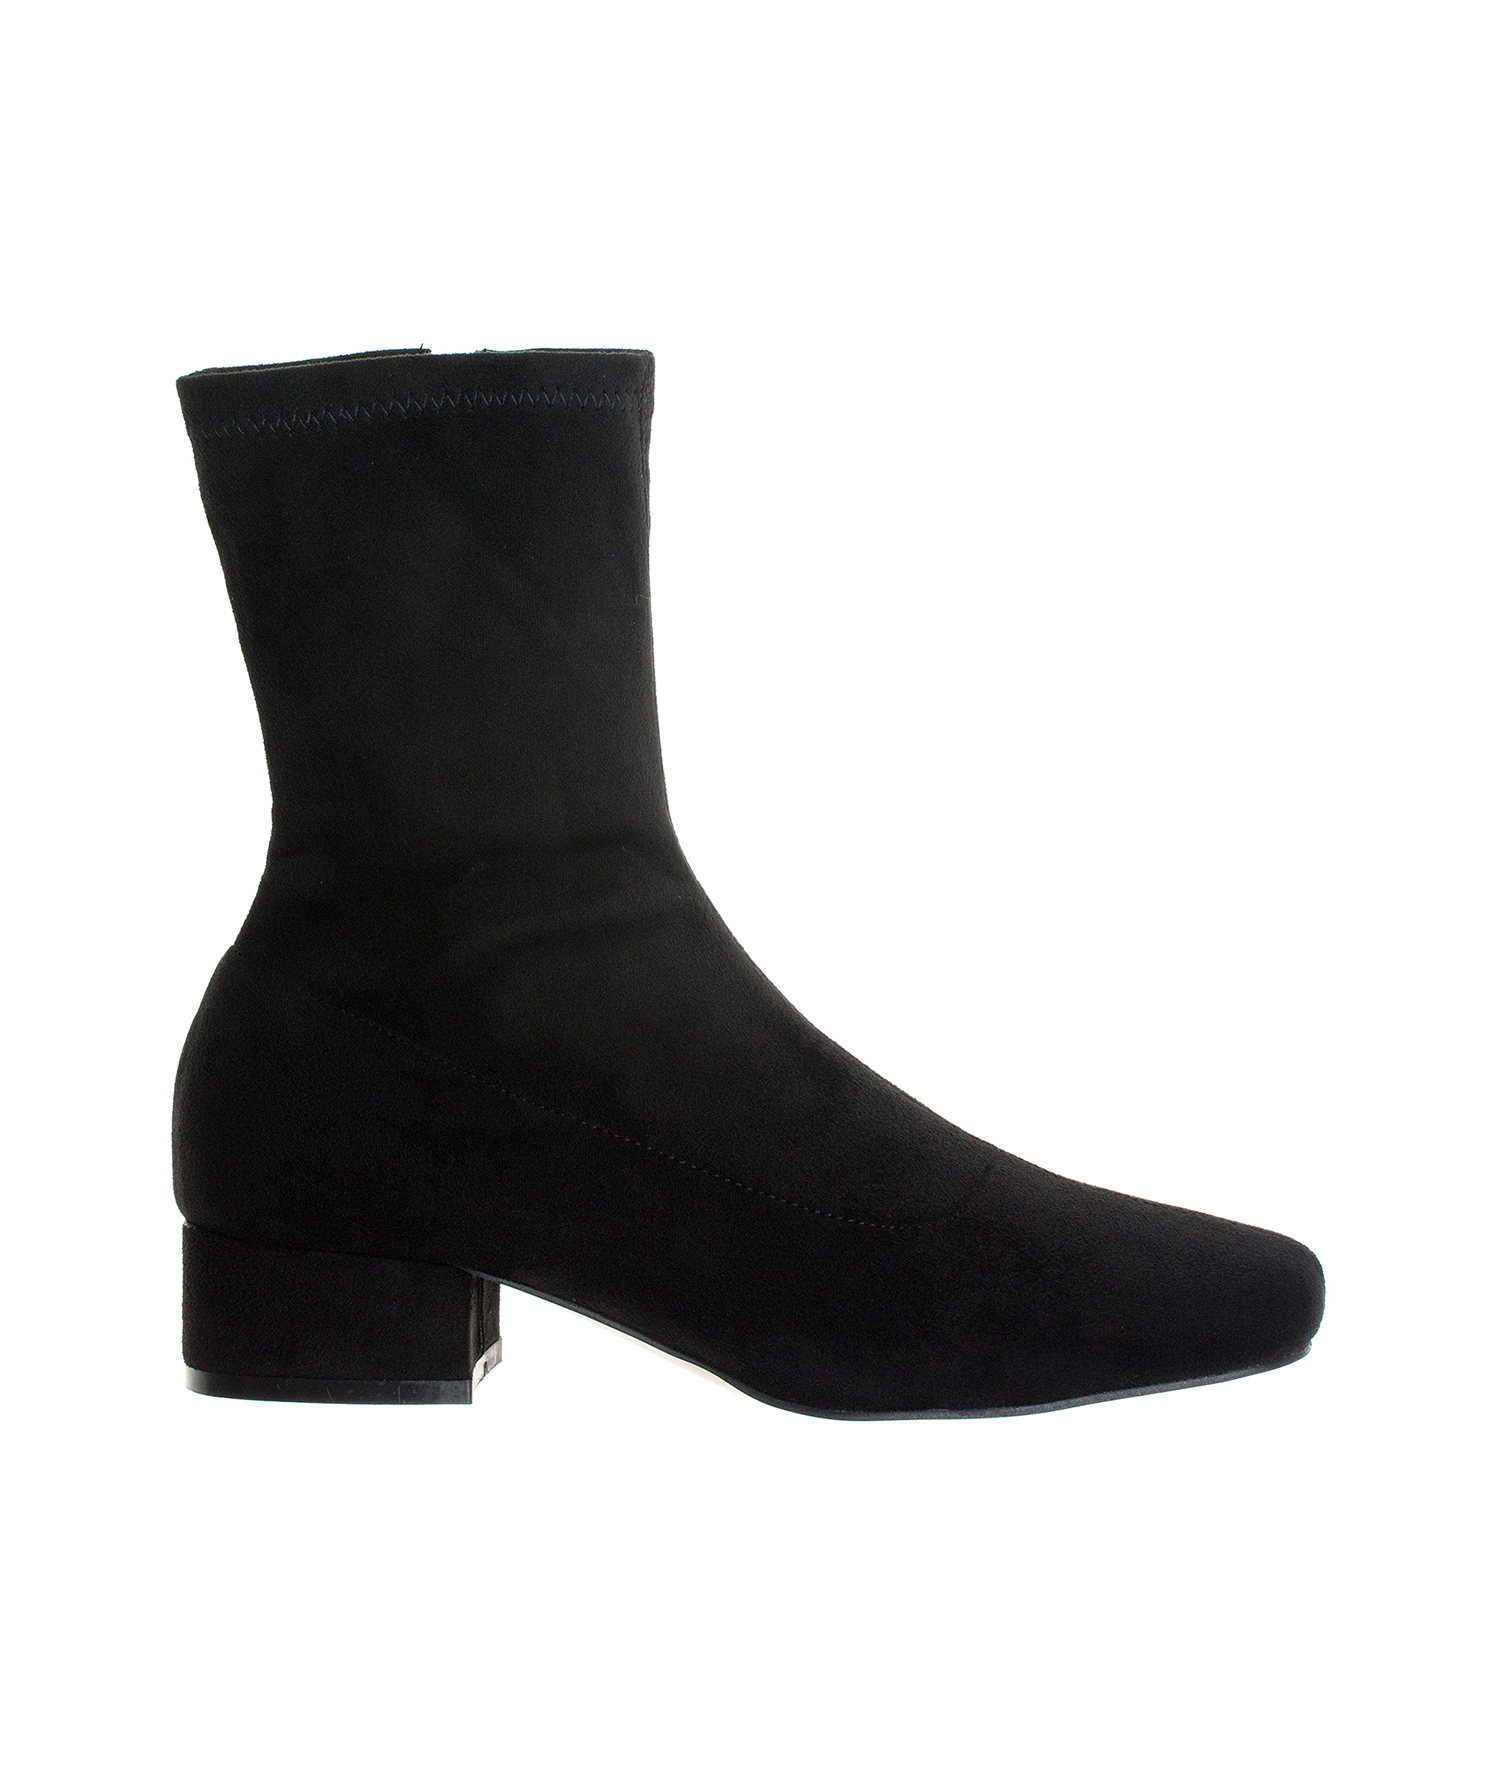 bcbf1998560 Stretch Shaft Ankle Bootie Low Heel Boots